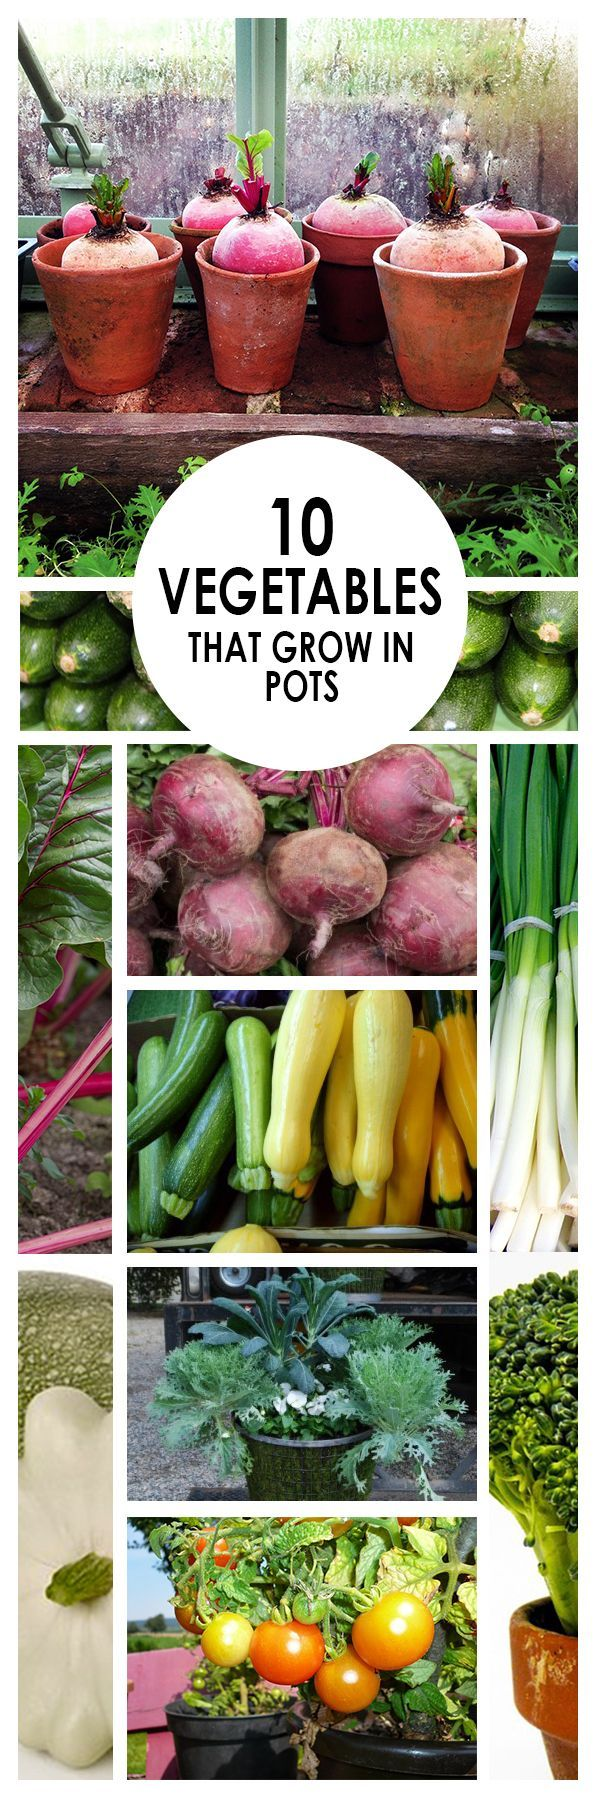 527 best Vegetable Gardening images on Pinterest Vegetable garden